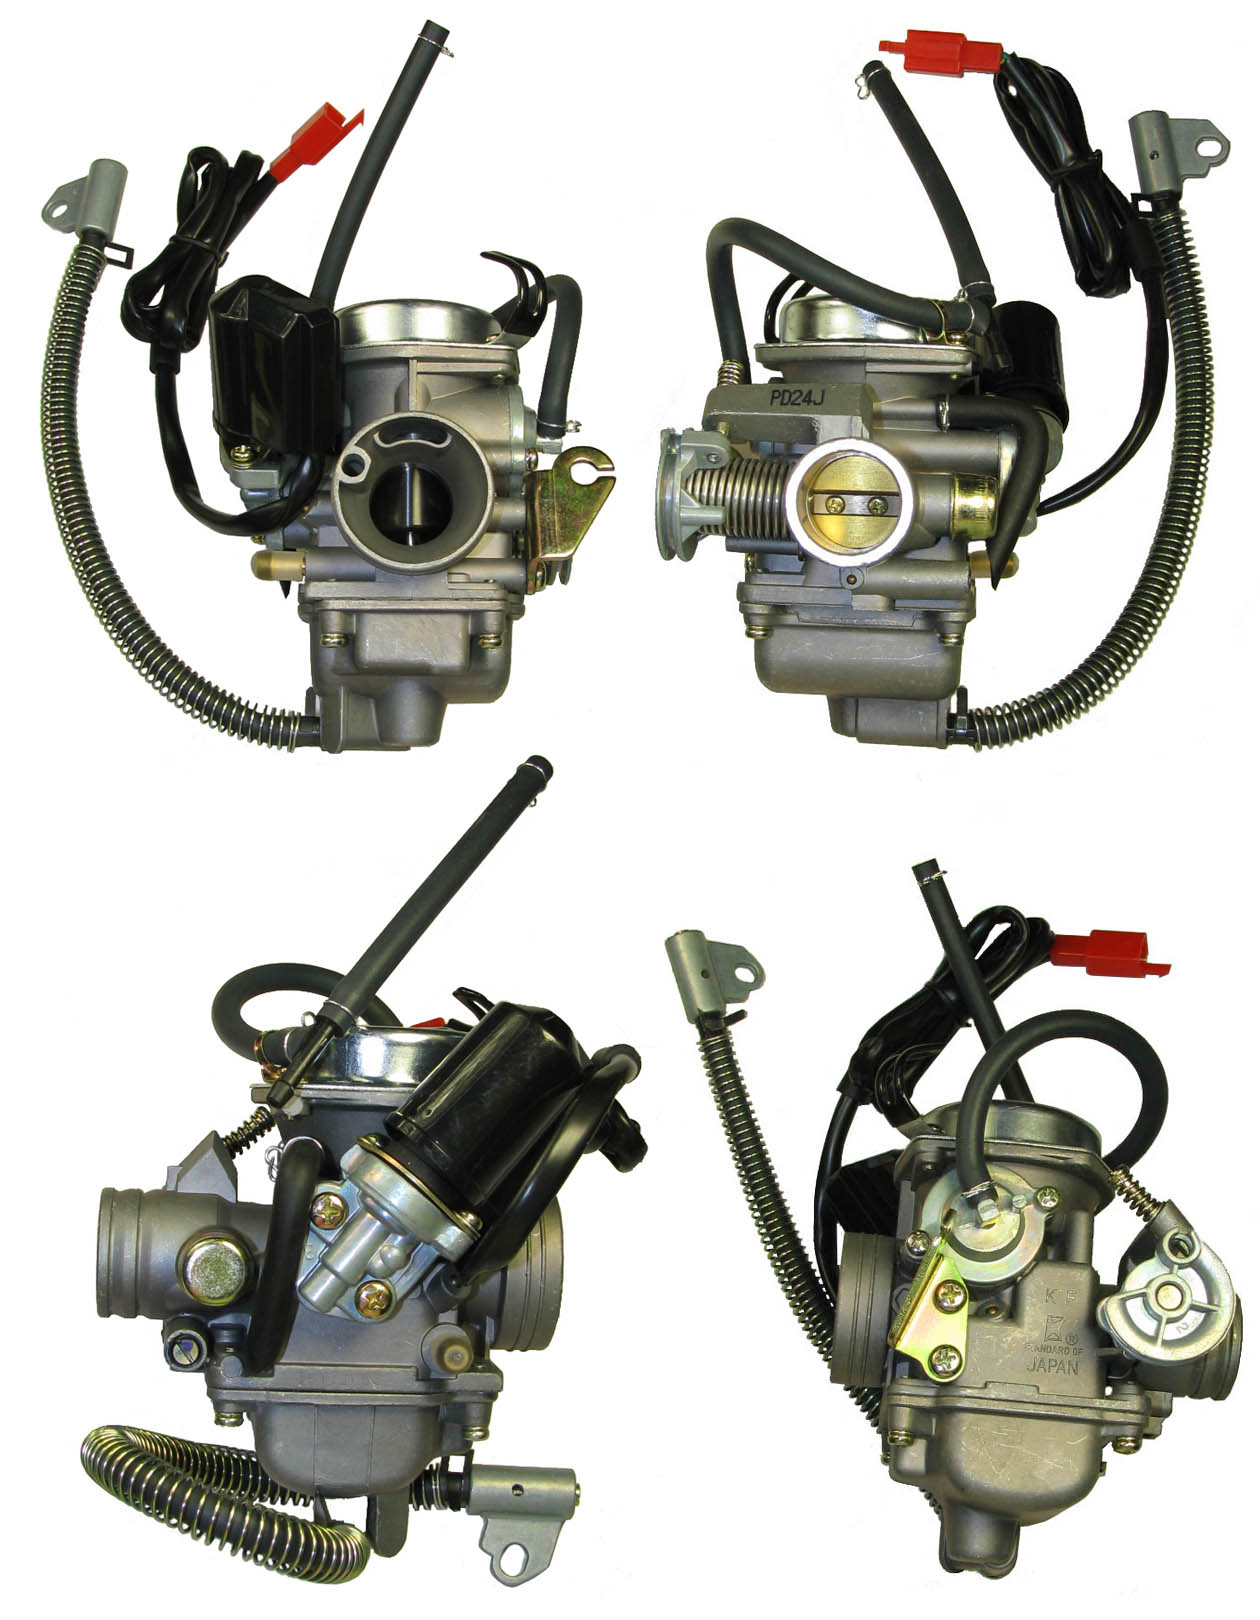 GY6_150cc_Carburetor_Logo 125cc to 150cc gy6 carburetor 150cc gy6 carburetor diagram at eliteediting.co